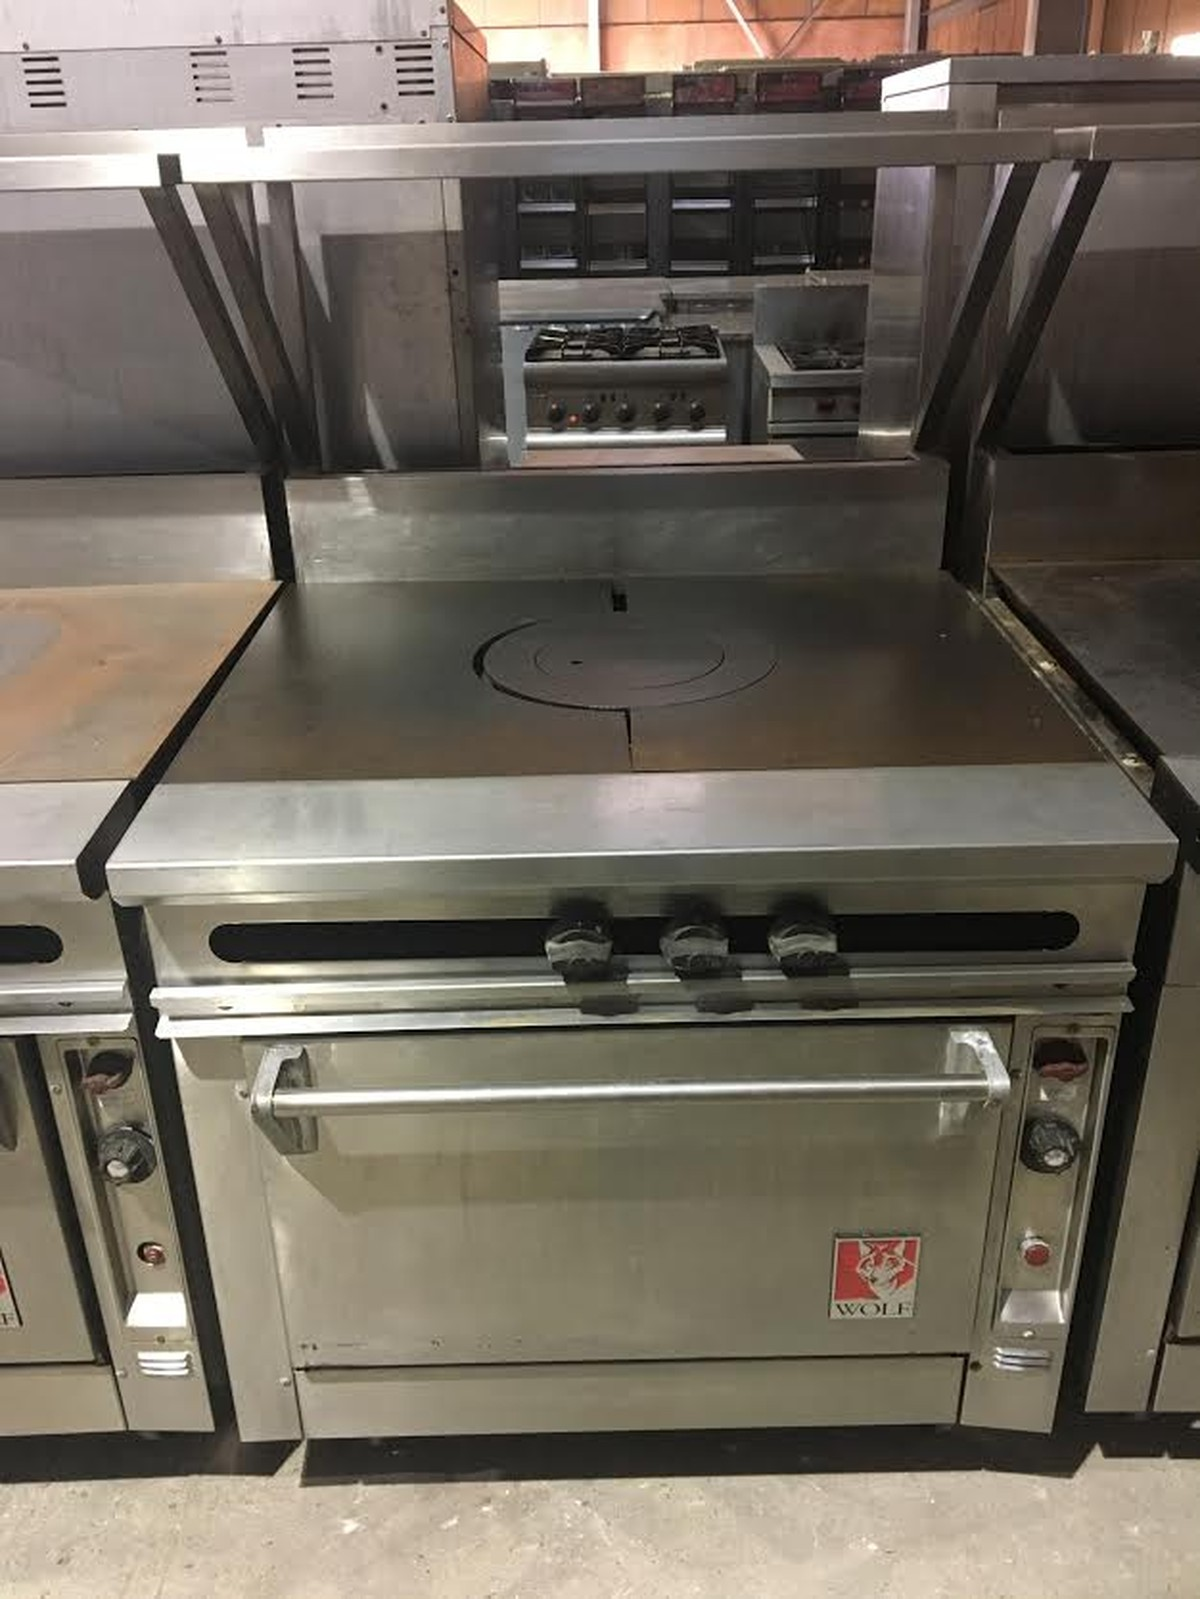 Uncategorized Wolf Kitchen Appliances Uk secondhand catering equipment gas range cookers wolf solid top ranges lancashire 1